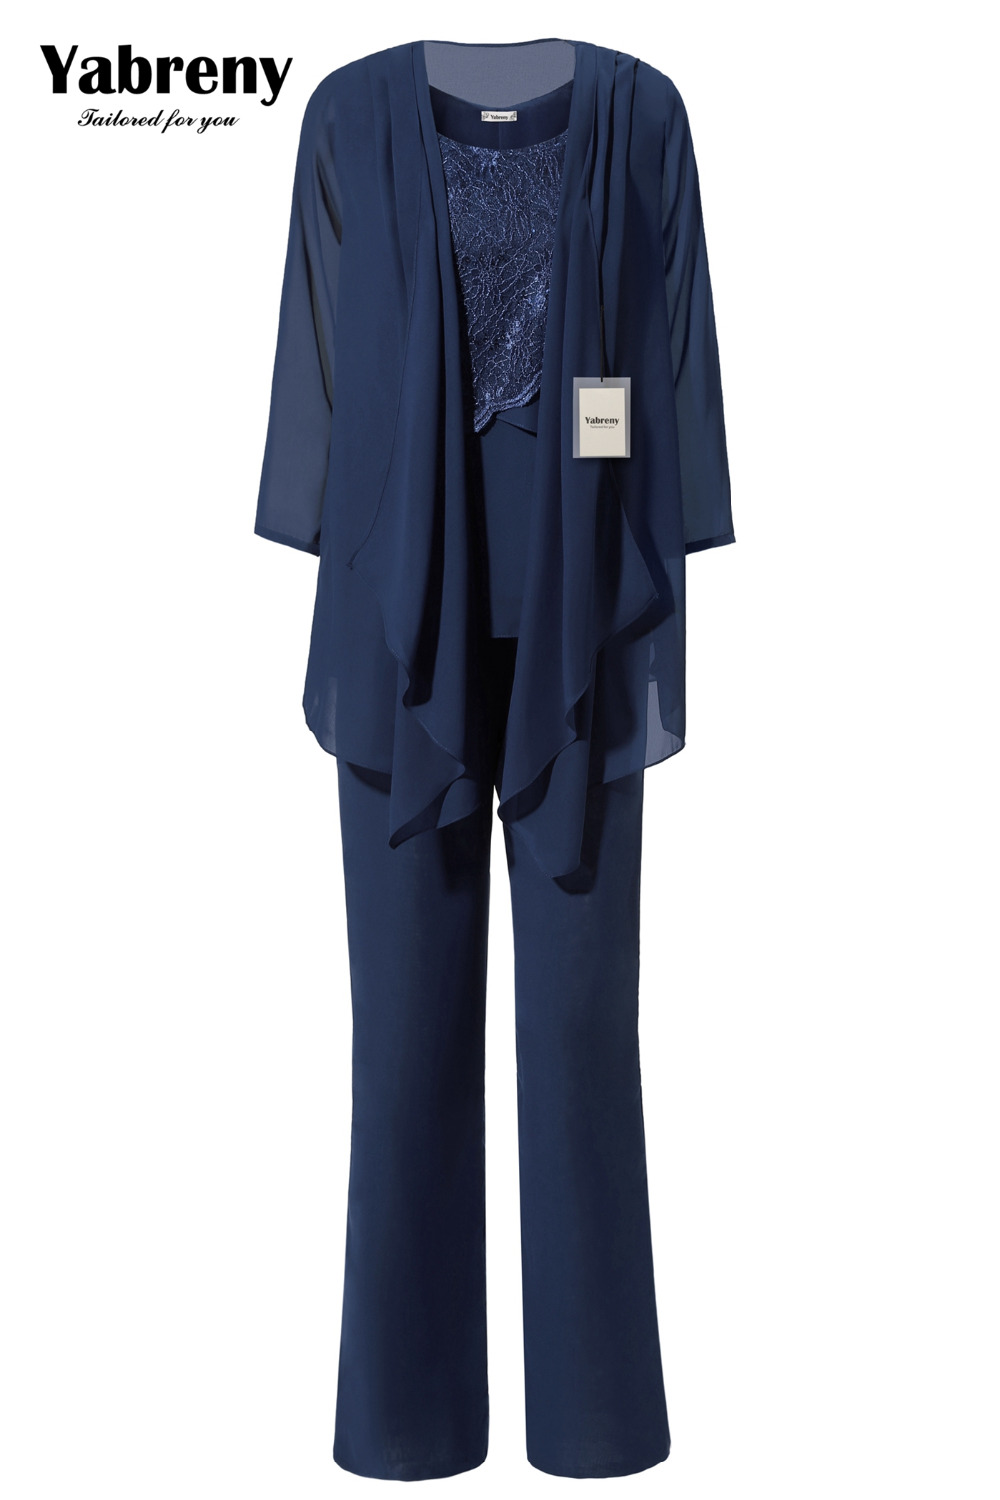 Yabreny Dark Navy Chiffon Mother Of Bride Pantsuit Special Occasion Wear MT0017011-3